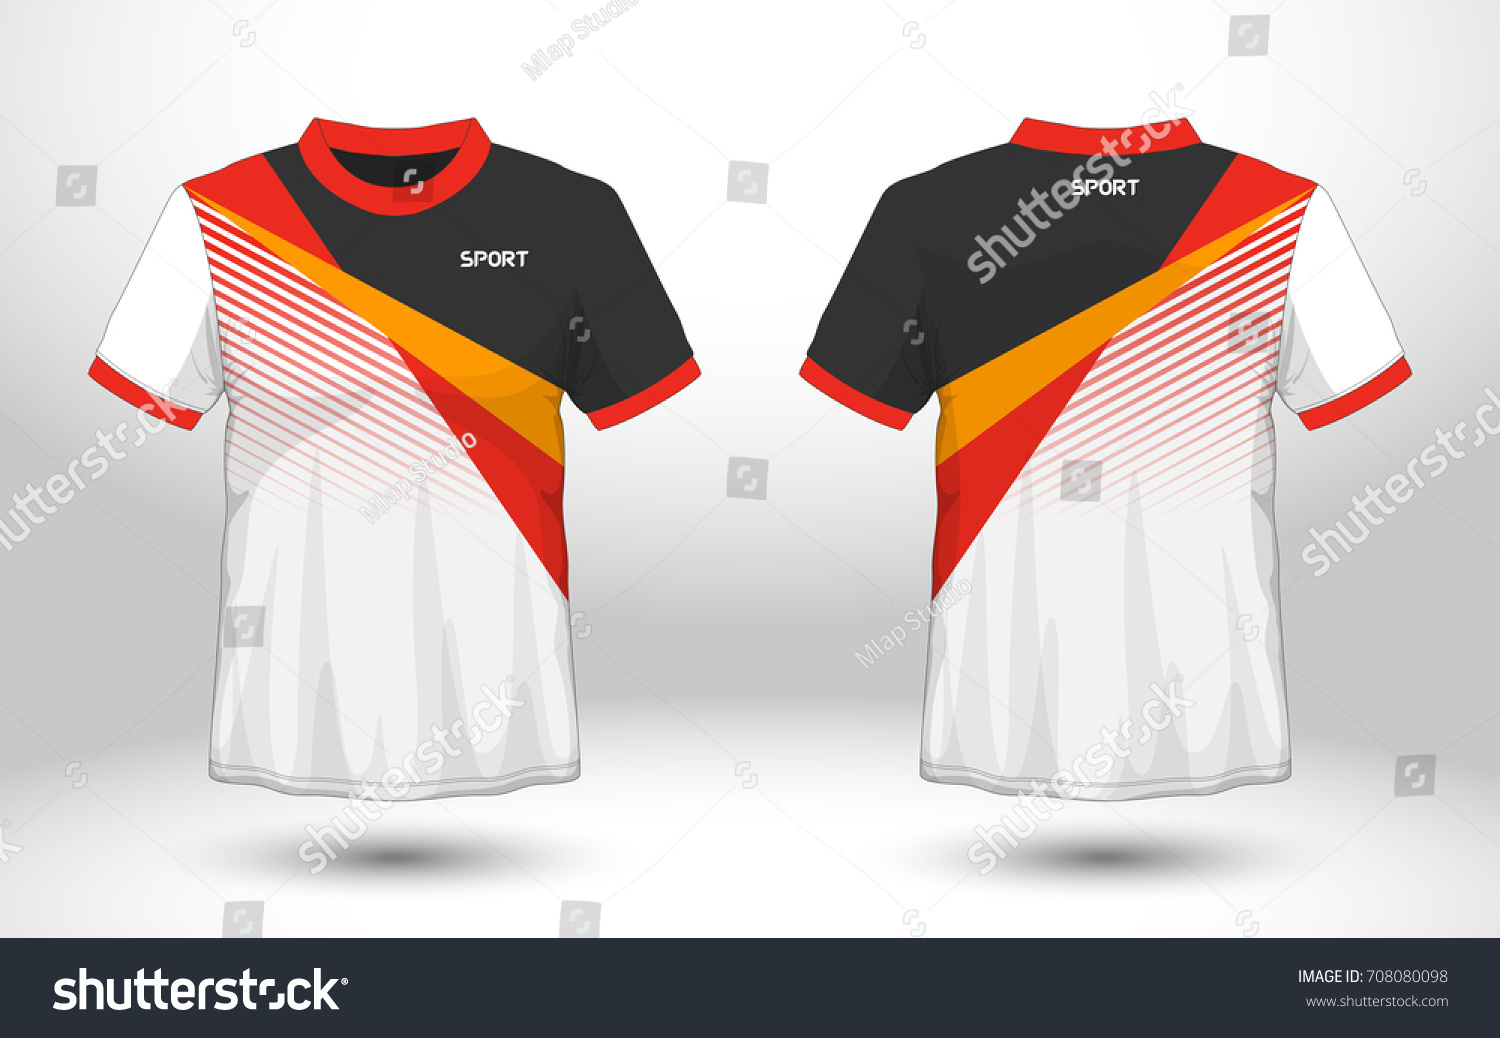 Royalty Free Red And Black Layout Football Sport T 708080098 Stock